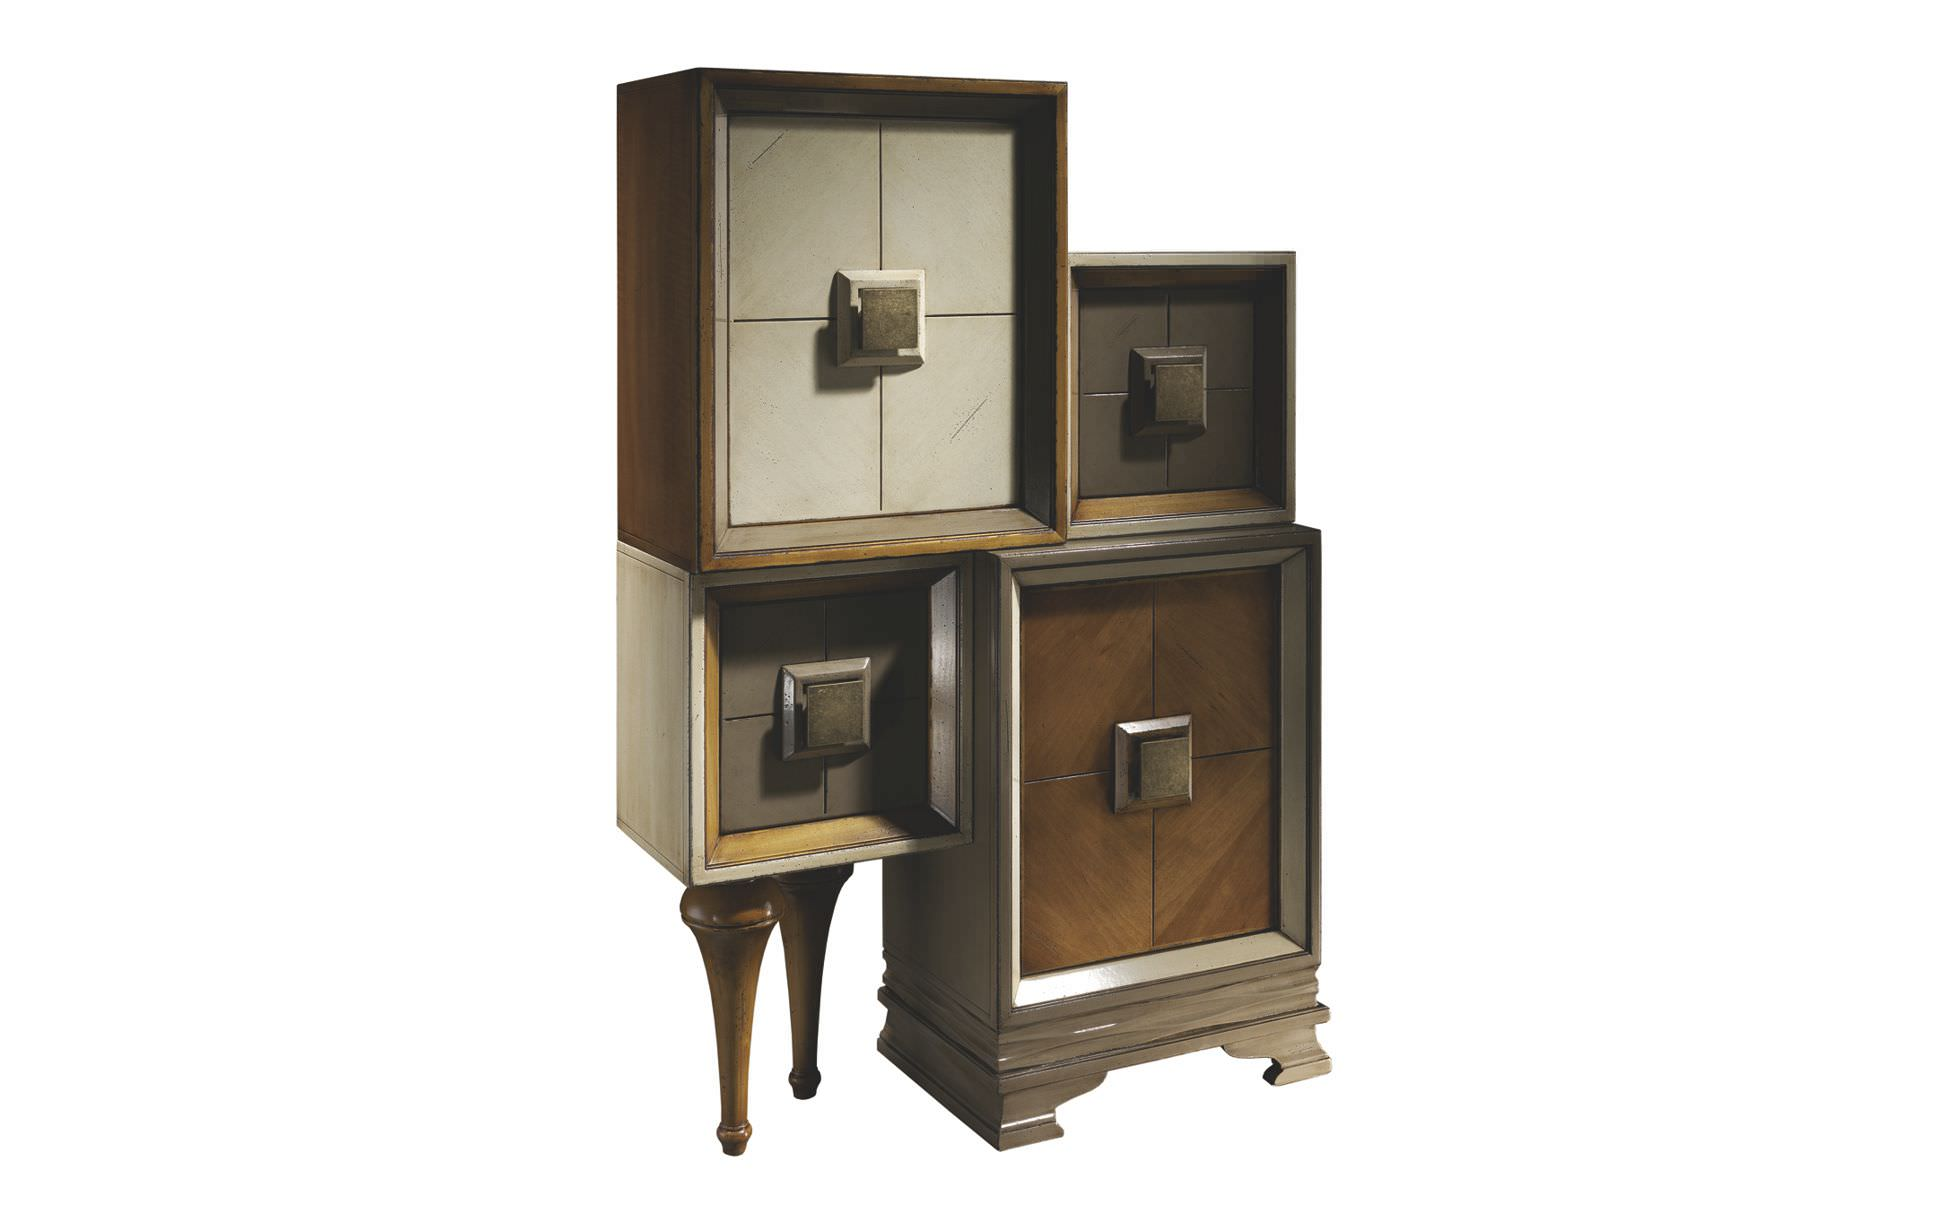 Contemporary Entryway Cabinet Wooden With Storage